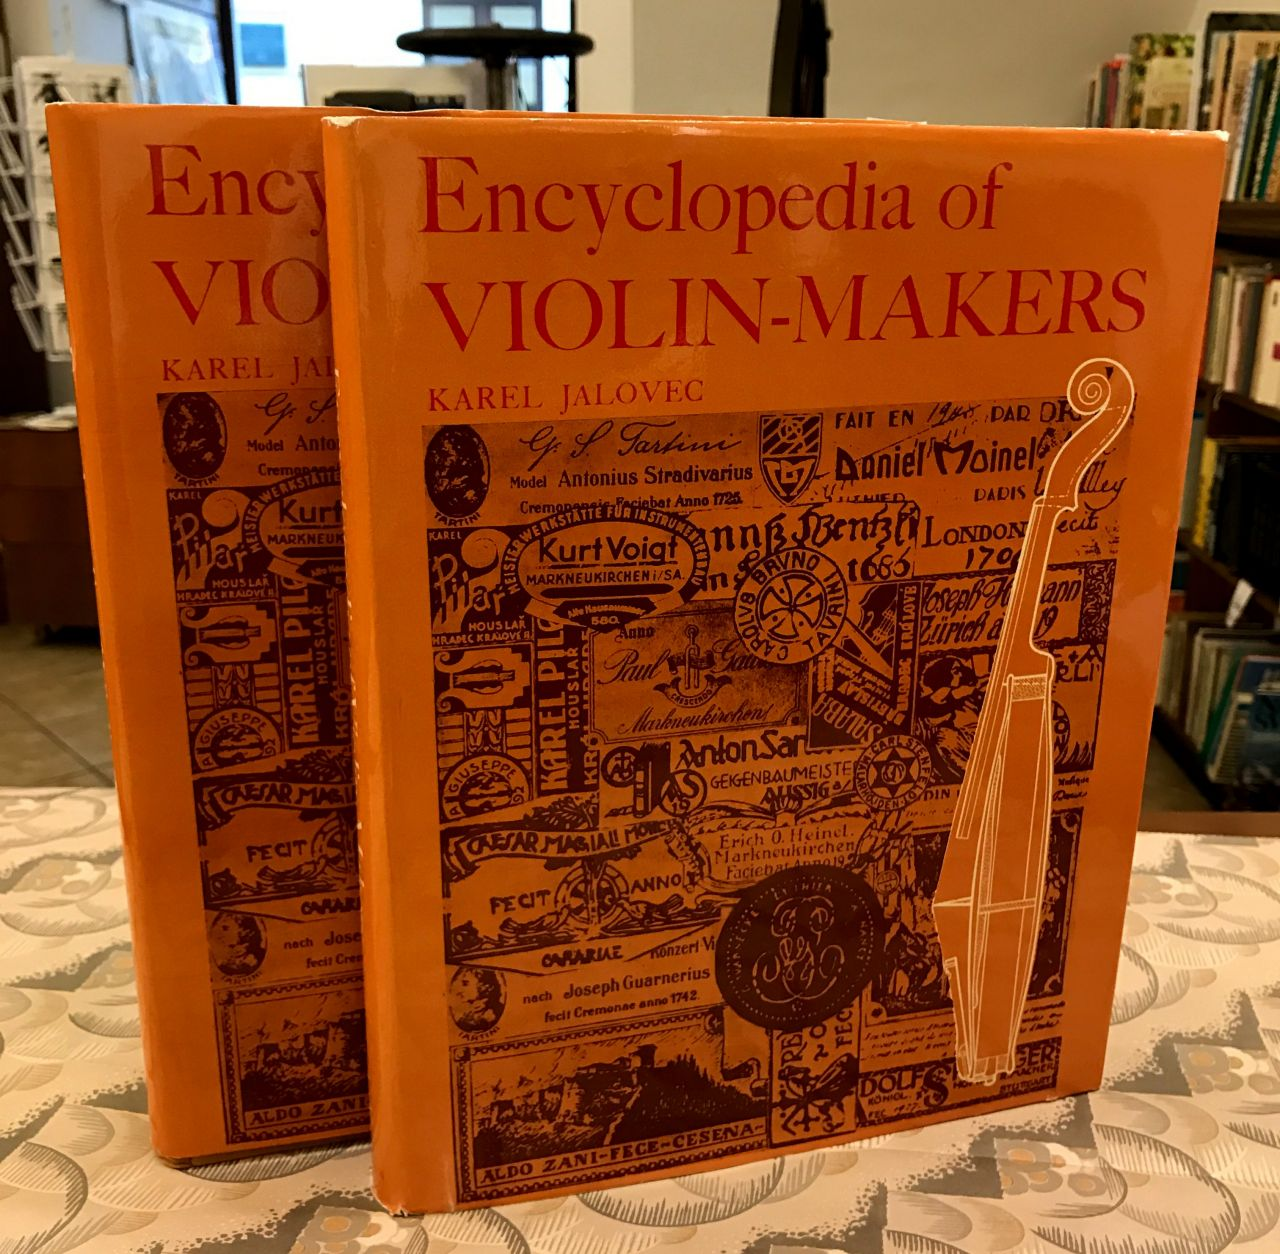 Encyklopedia of Violin-Makers. Volume I: A-K. Volume II: L-Z File 13.1.17 11 28 49